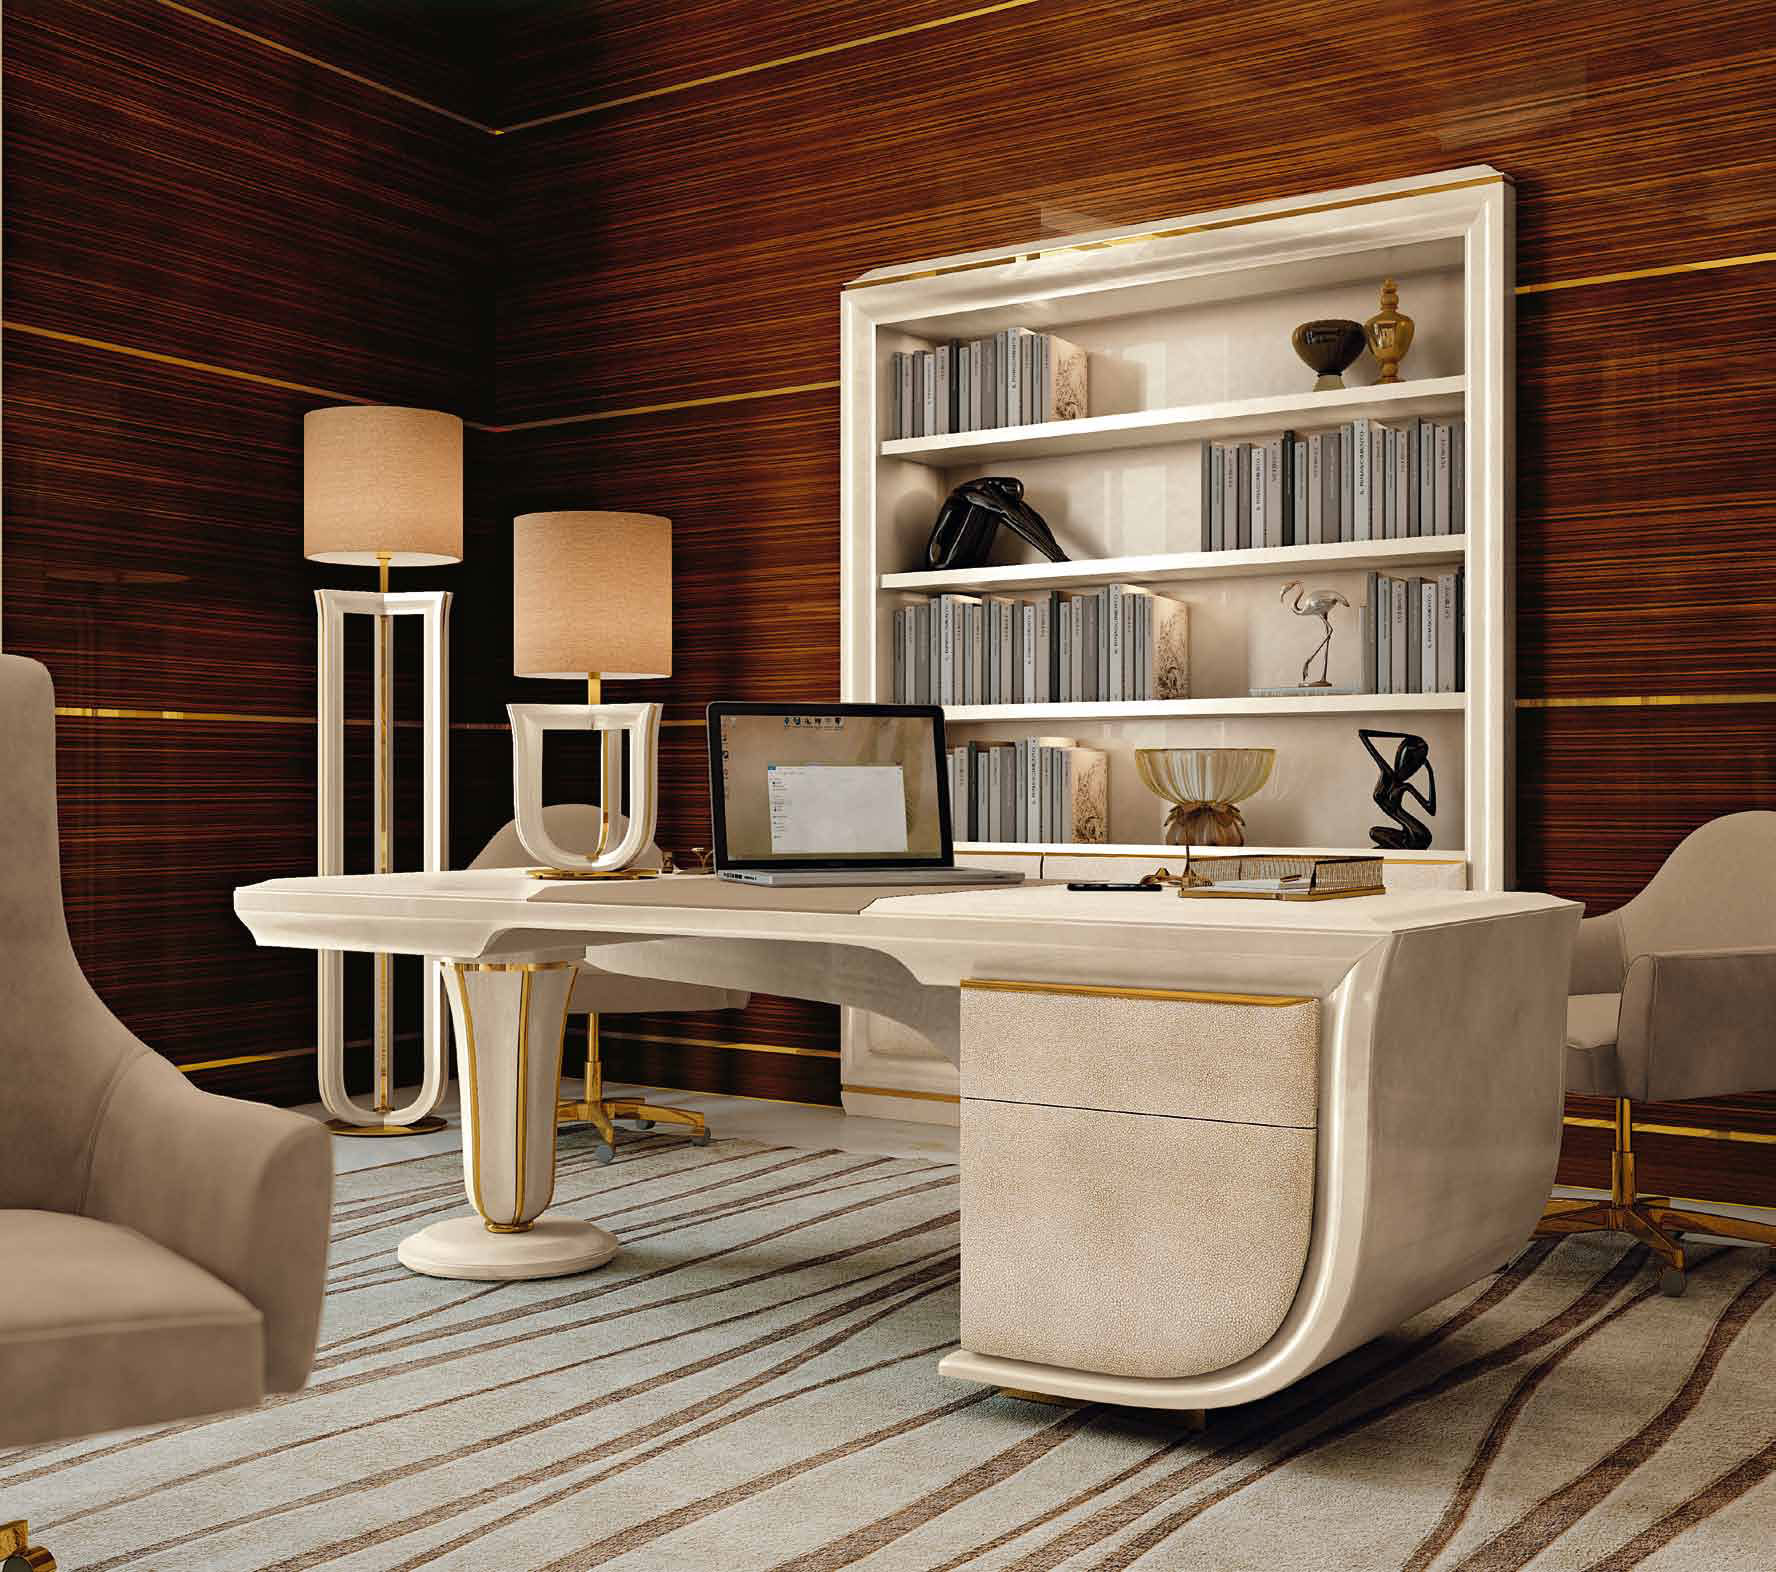 meubles contemporains meubles sur mesure hifigeny On bureau de luxe design